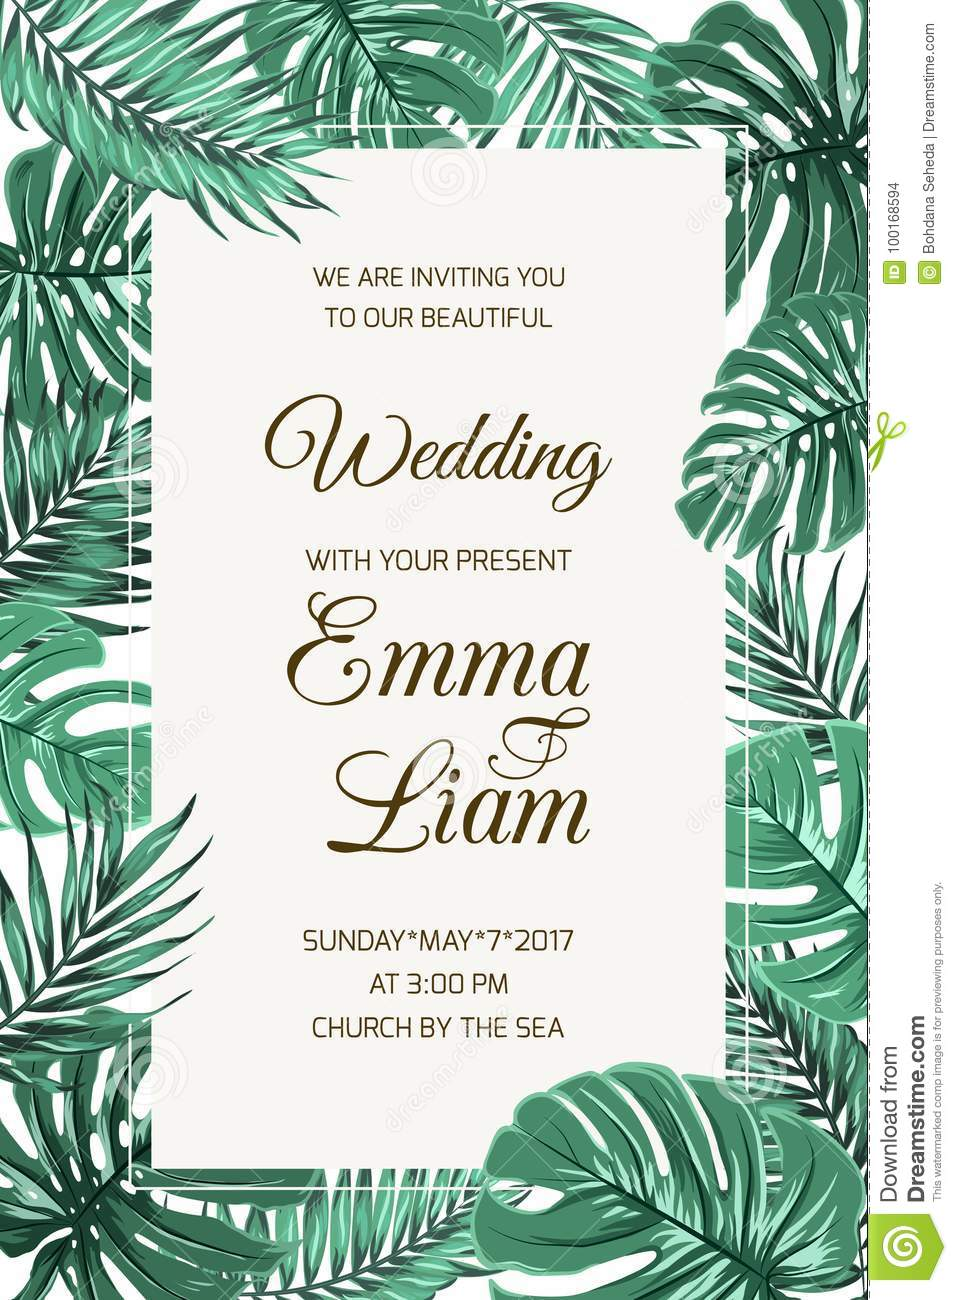 Wedding Invitation Card Template Tropical Leaves Stock Vector Illustration Of Modern Design 100168594 About tropical palm tree leaves invitation: https www dreamstime com wedding invitation card template tropical leaves event exotic jungle rainforest bright green palm tree monstera border frame image100168594